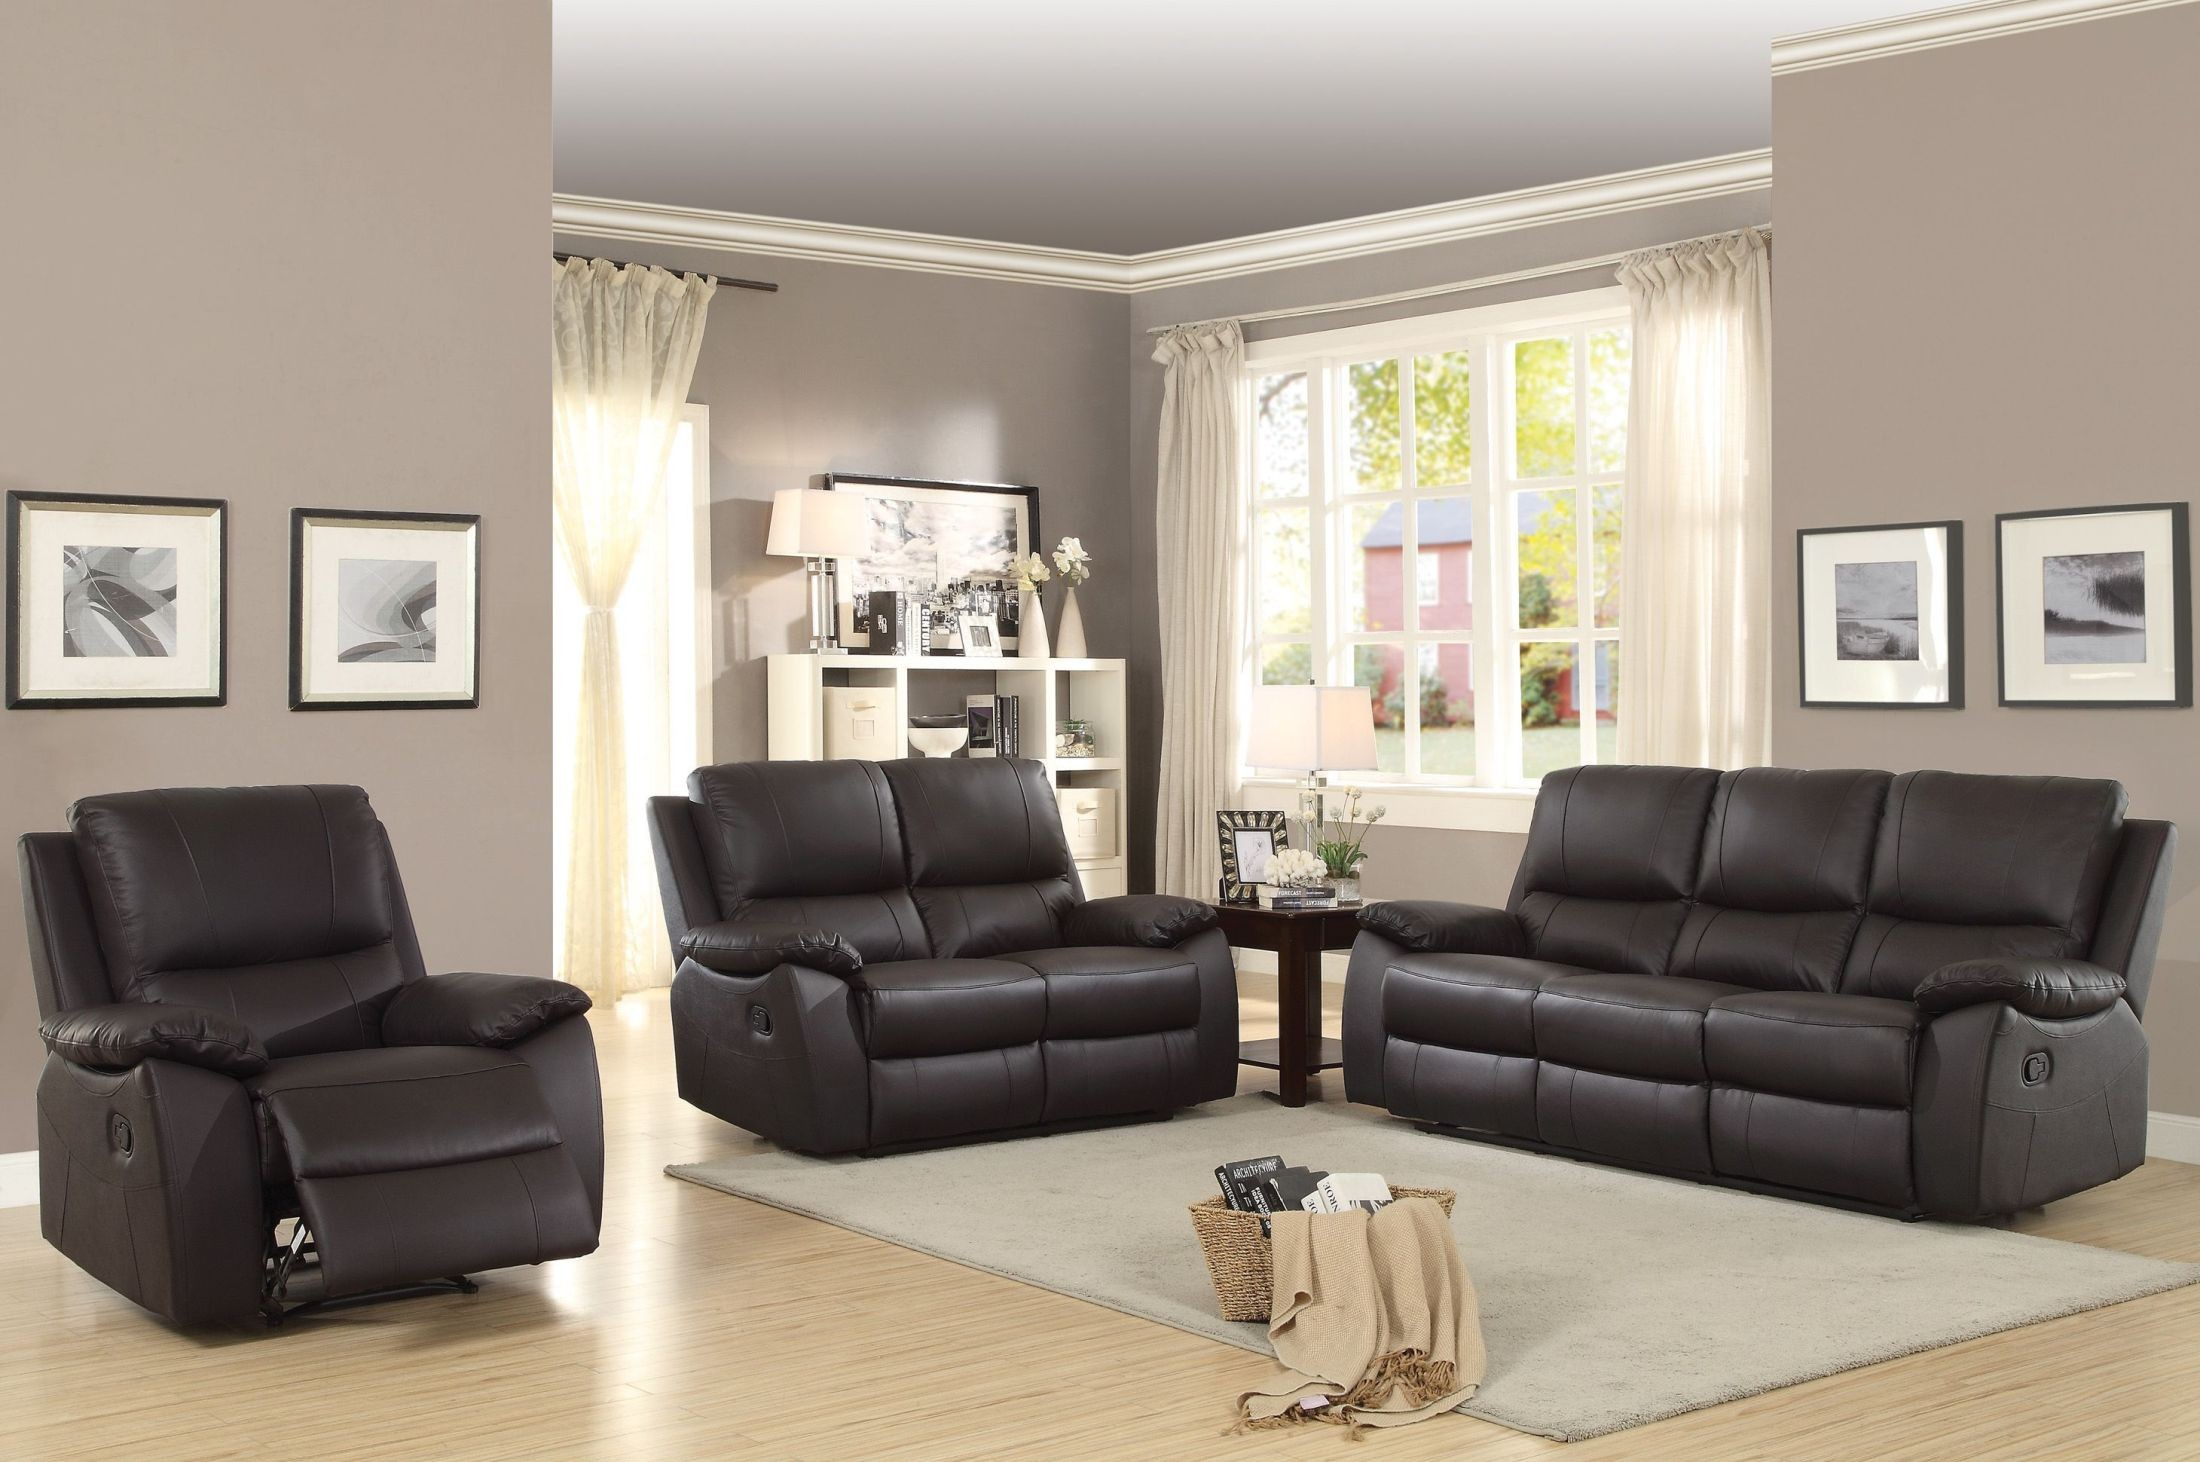 Greeley Brown Double Reclining Living Room Set From Homelegance Coleman Furniture